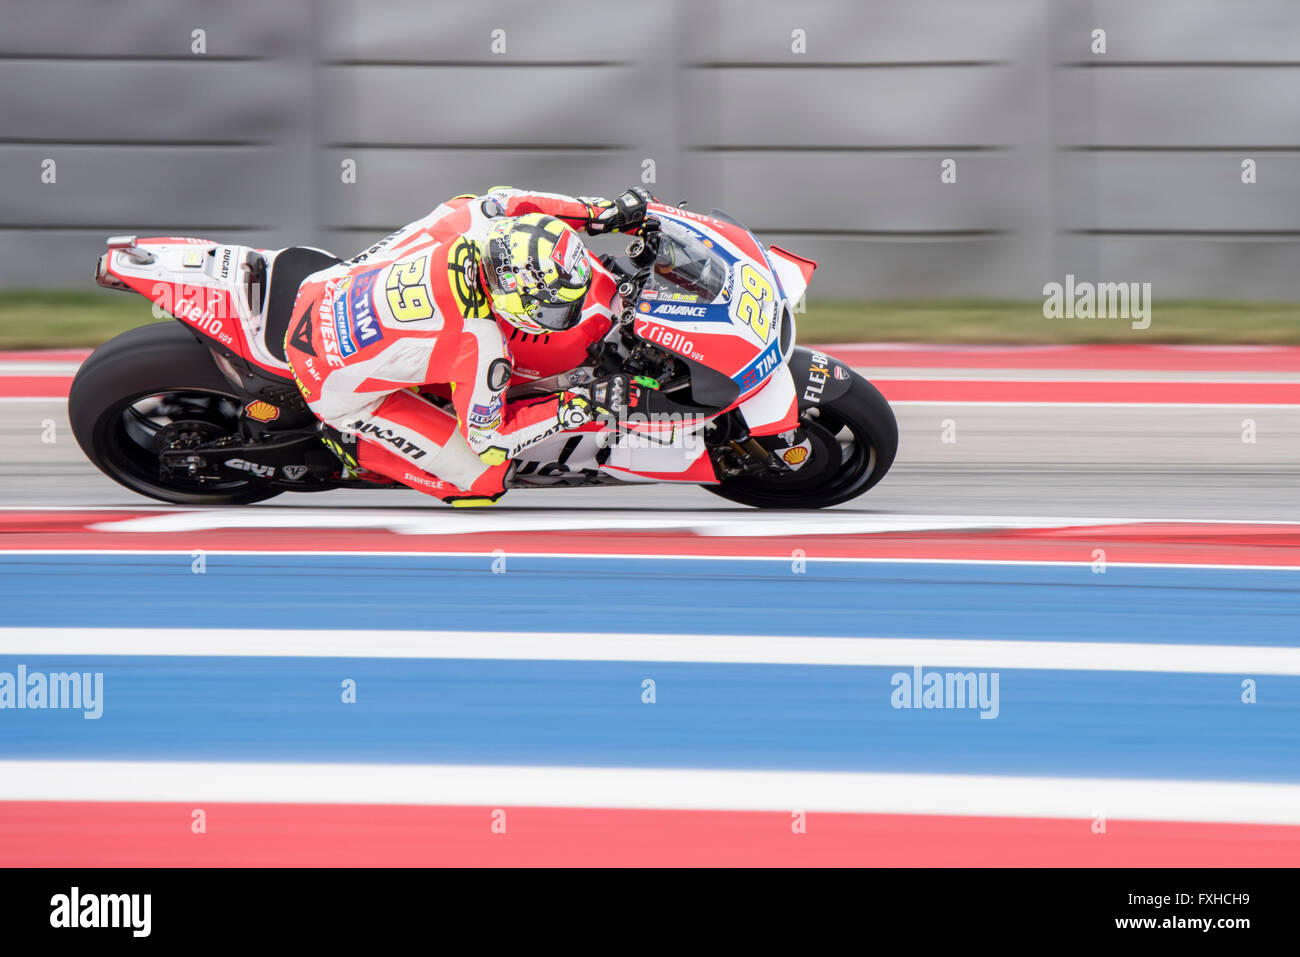 Andrea Iannone of Ducati on his way to 3rd place in the 2016 Red Bull Grand Prix of the Americas at Circuit of the Stock Photo